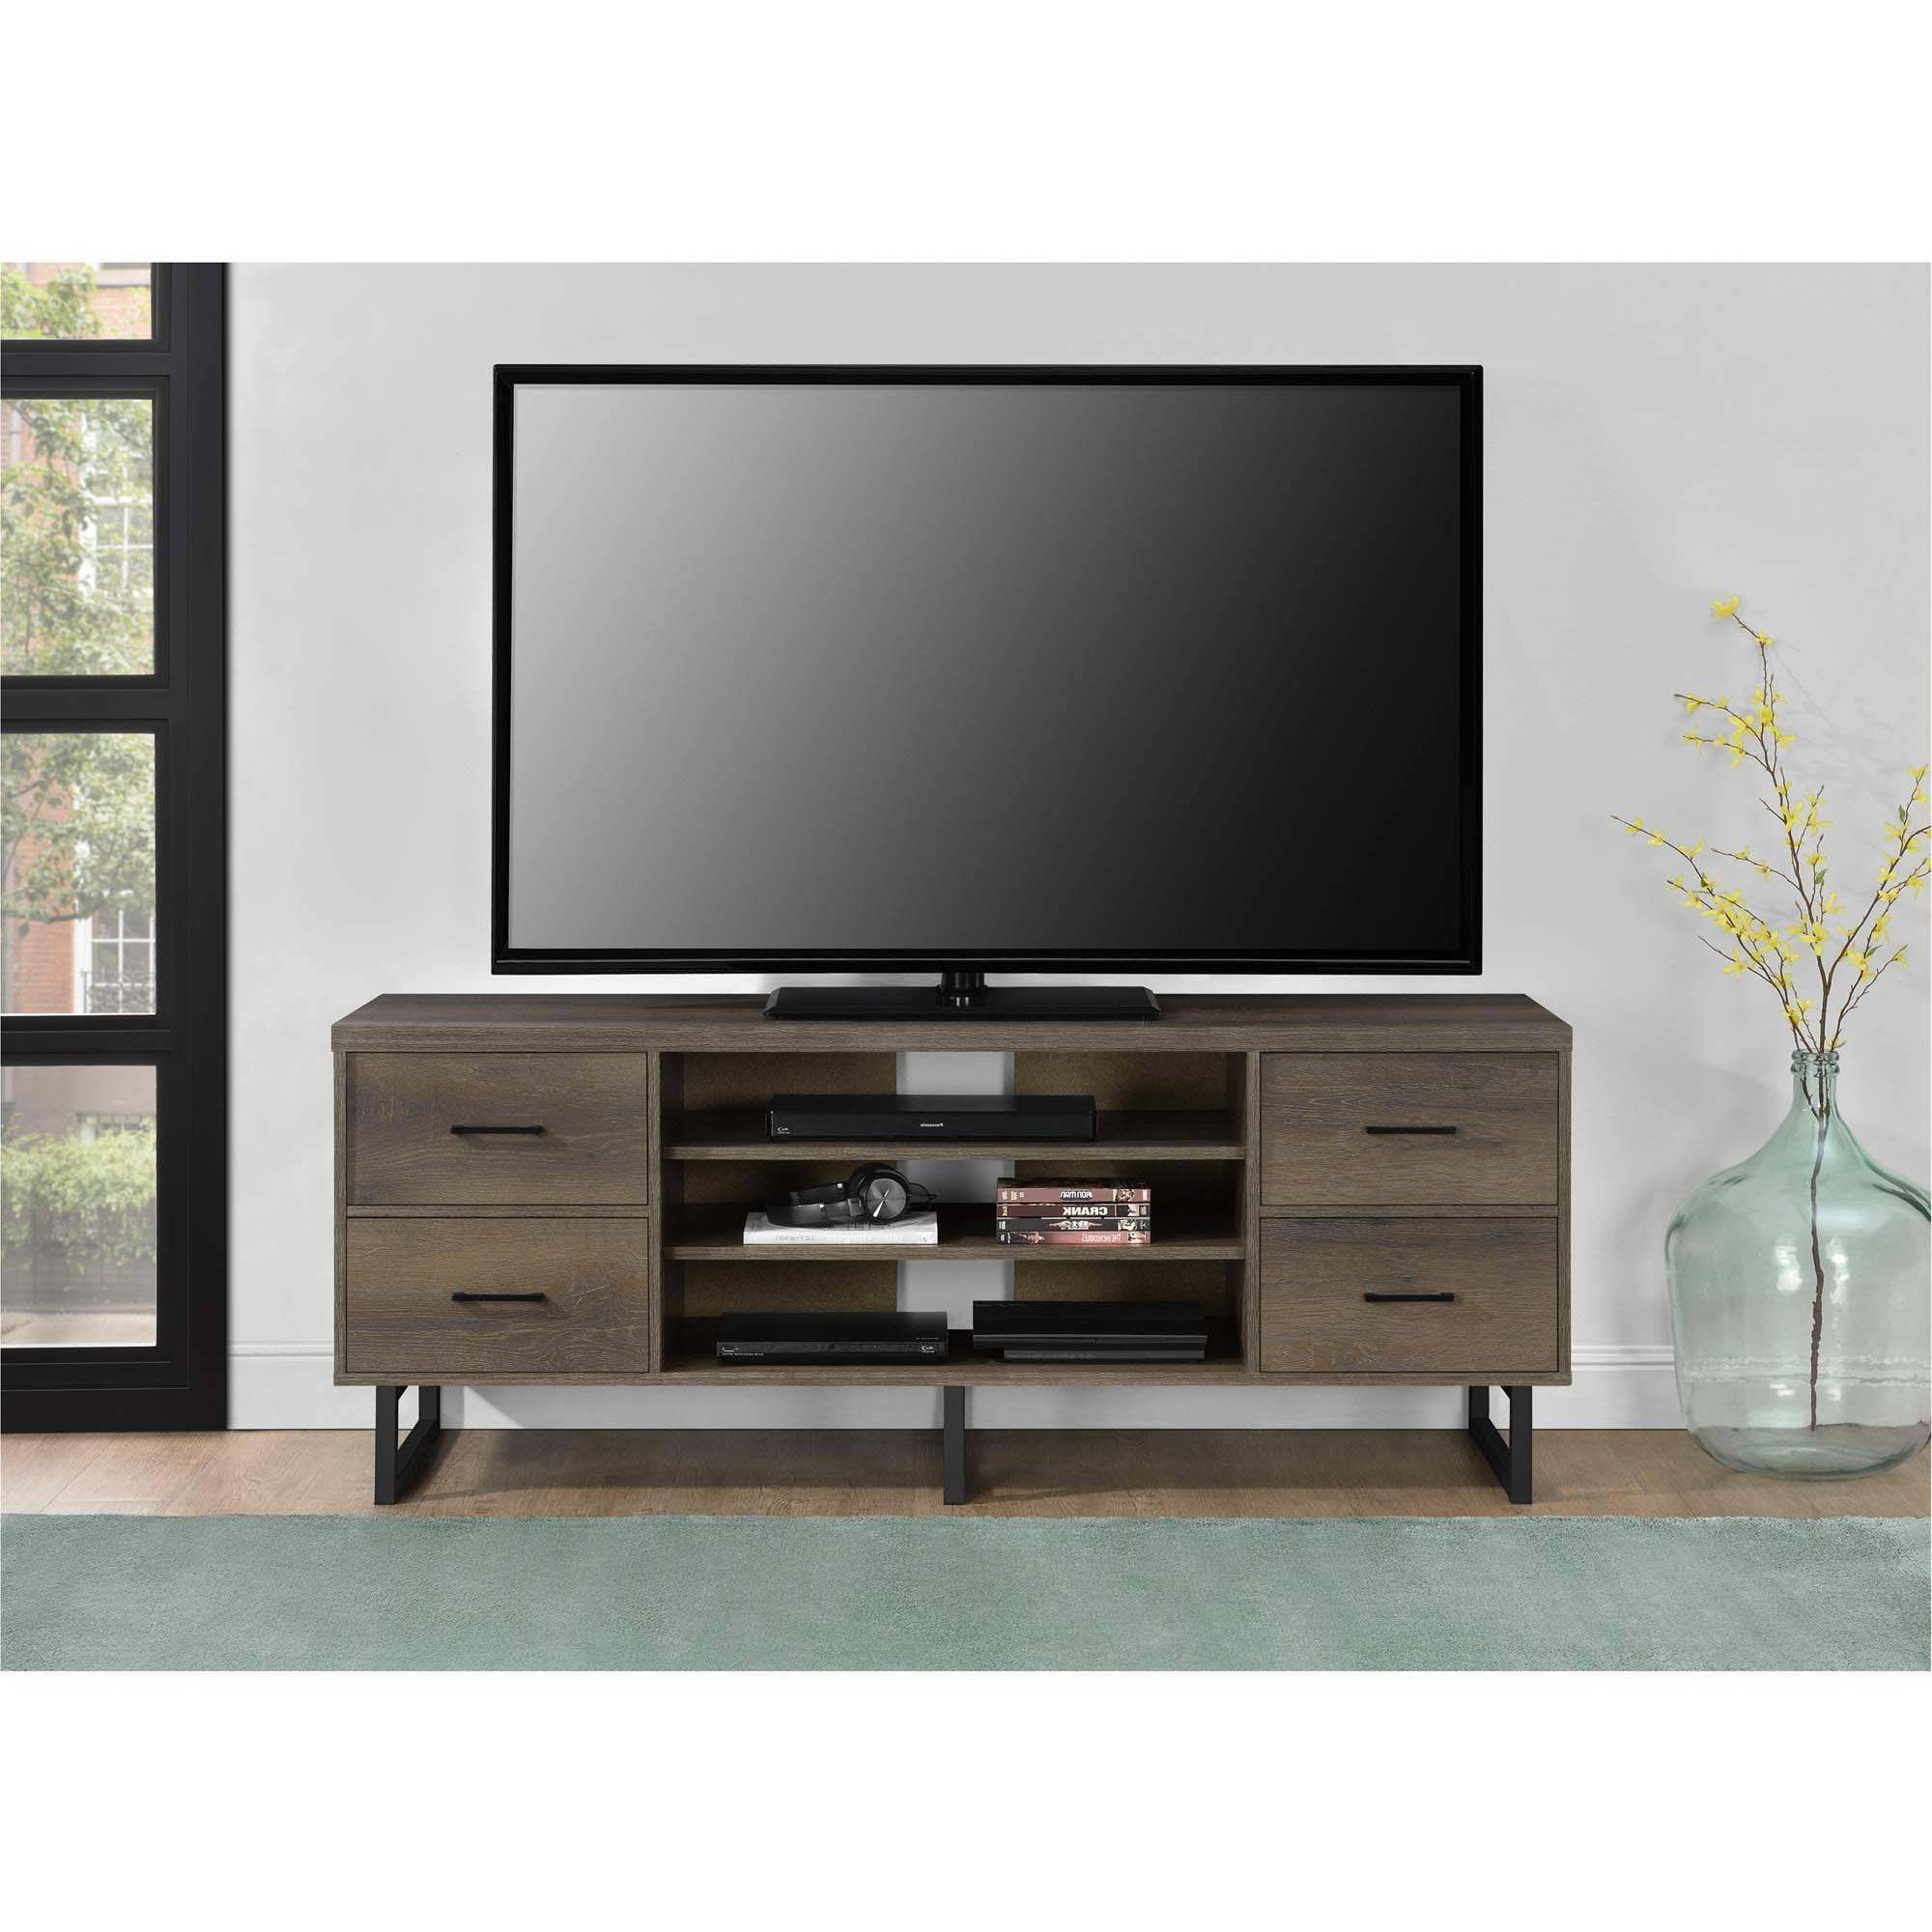 Ameriwood Home Candon Tv Stand With Bins For Tvs Up To 60 With Regard To Jackson Wide Tv Stands (View 2 of 20)